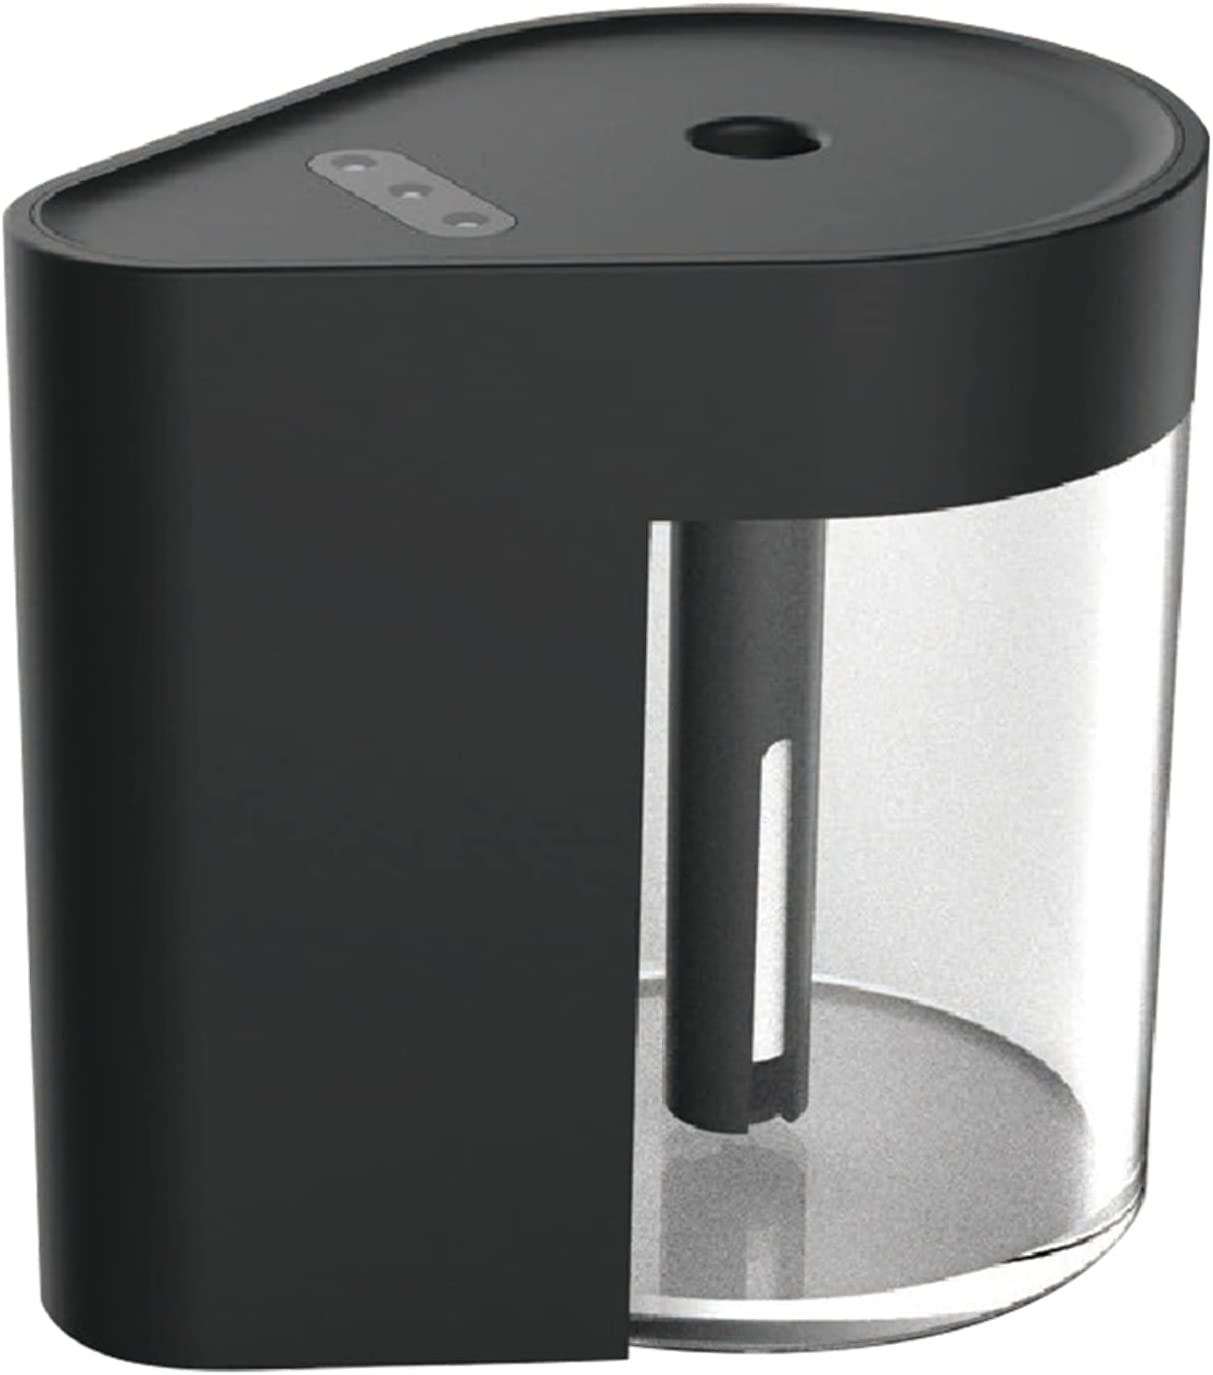 Automatic Hand Direct stock discount Sanitizer Clearance SALE Limited time Dispenser Spray Touchless Alcohol Liqu